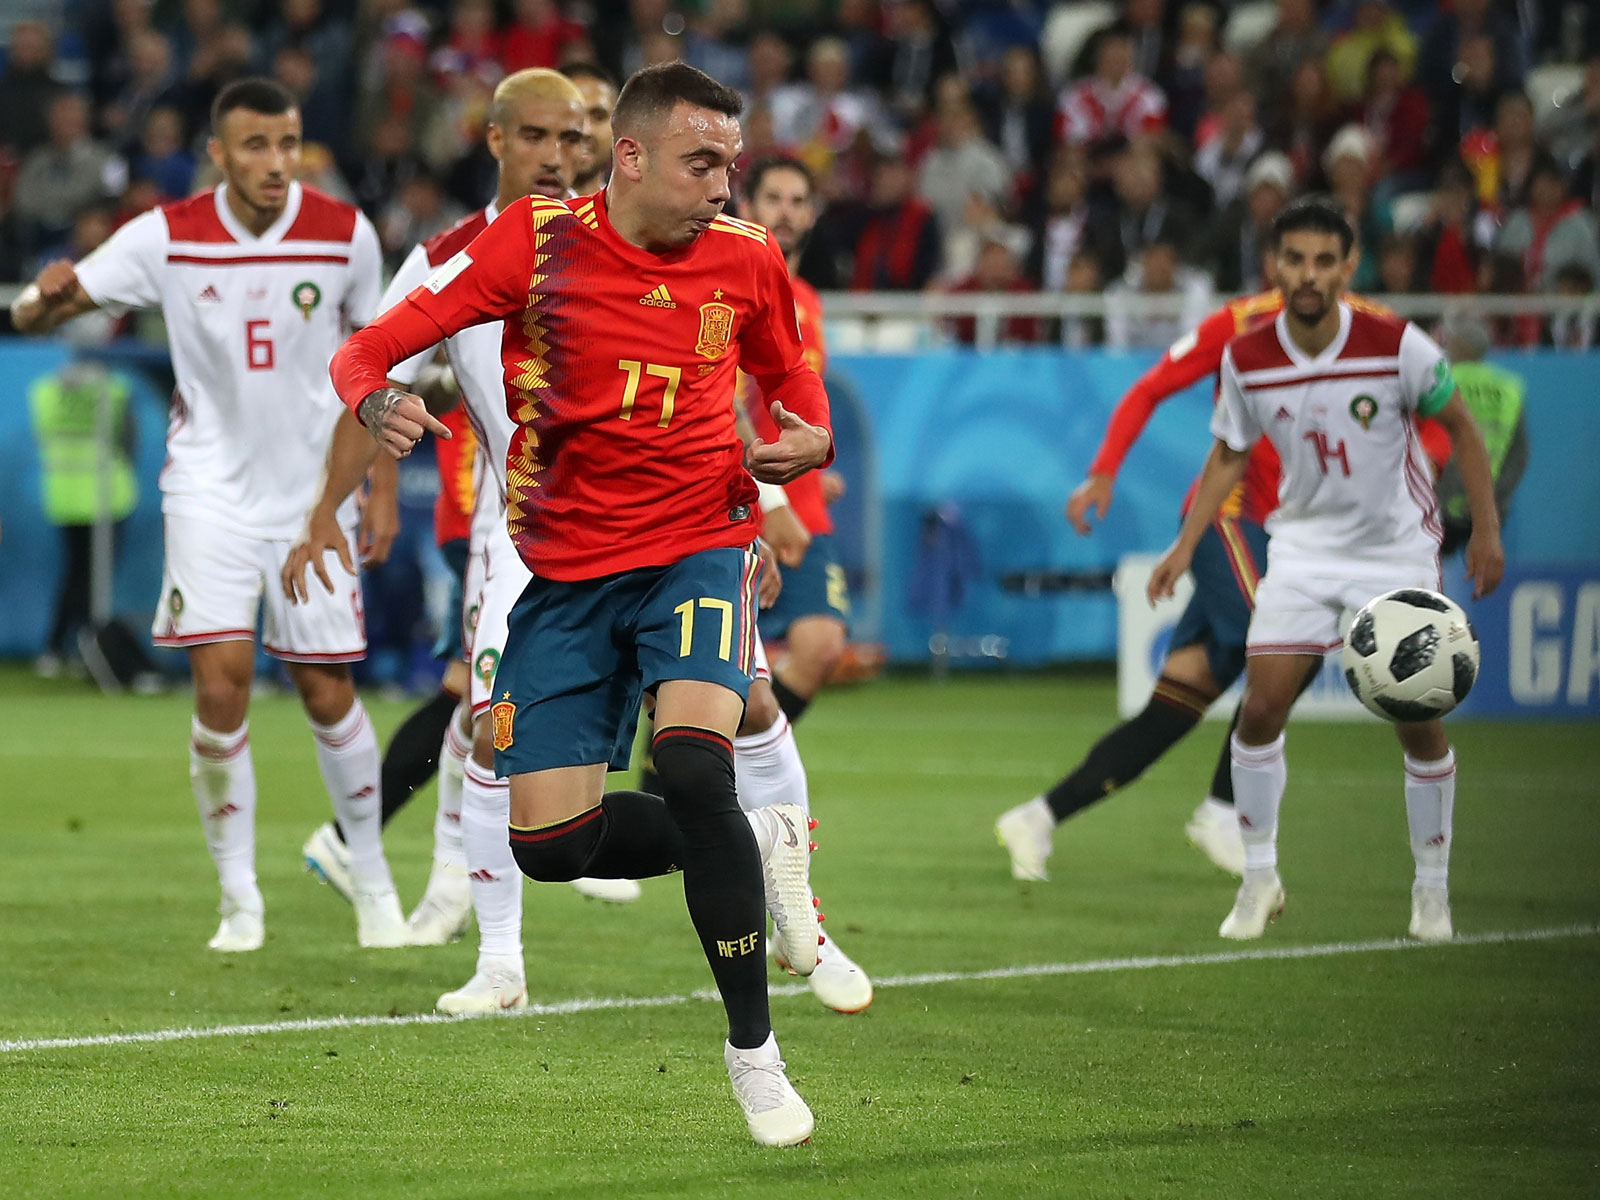 Iago Aspas scores for Spain vs. Morocco in the 2018 World Cup